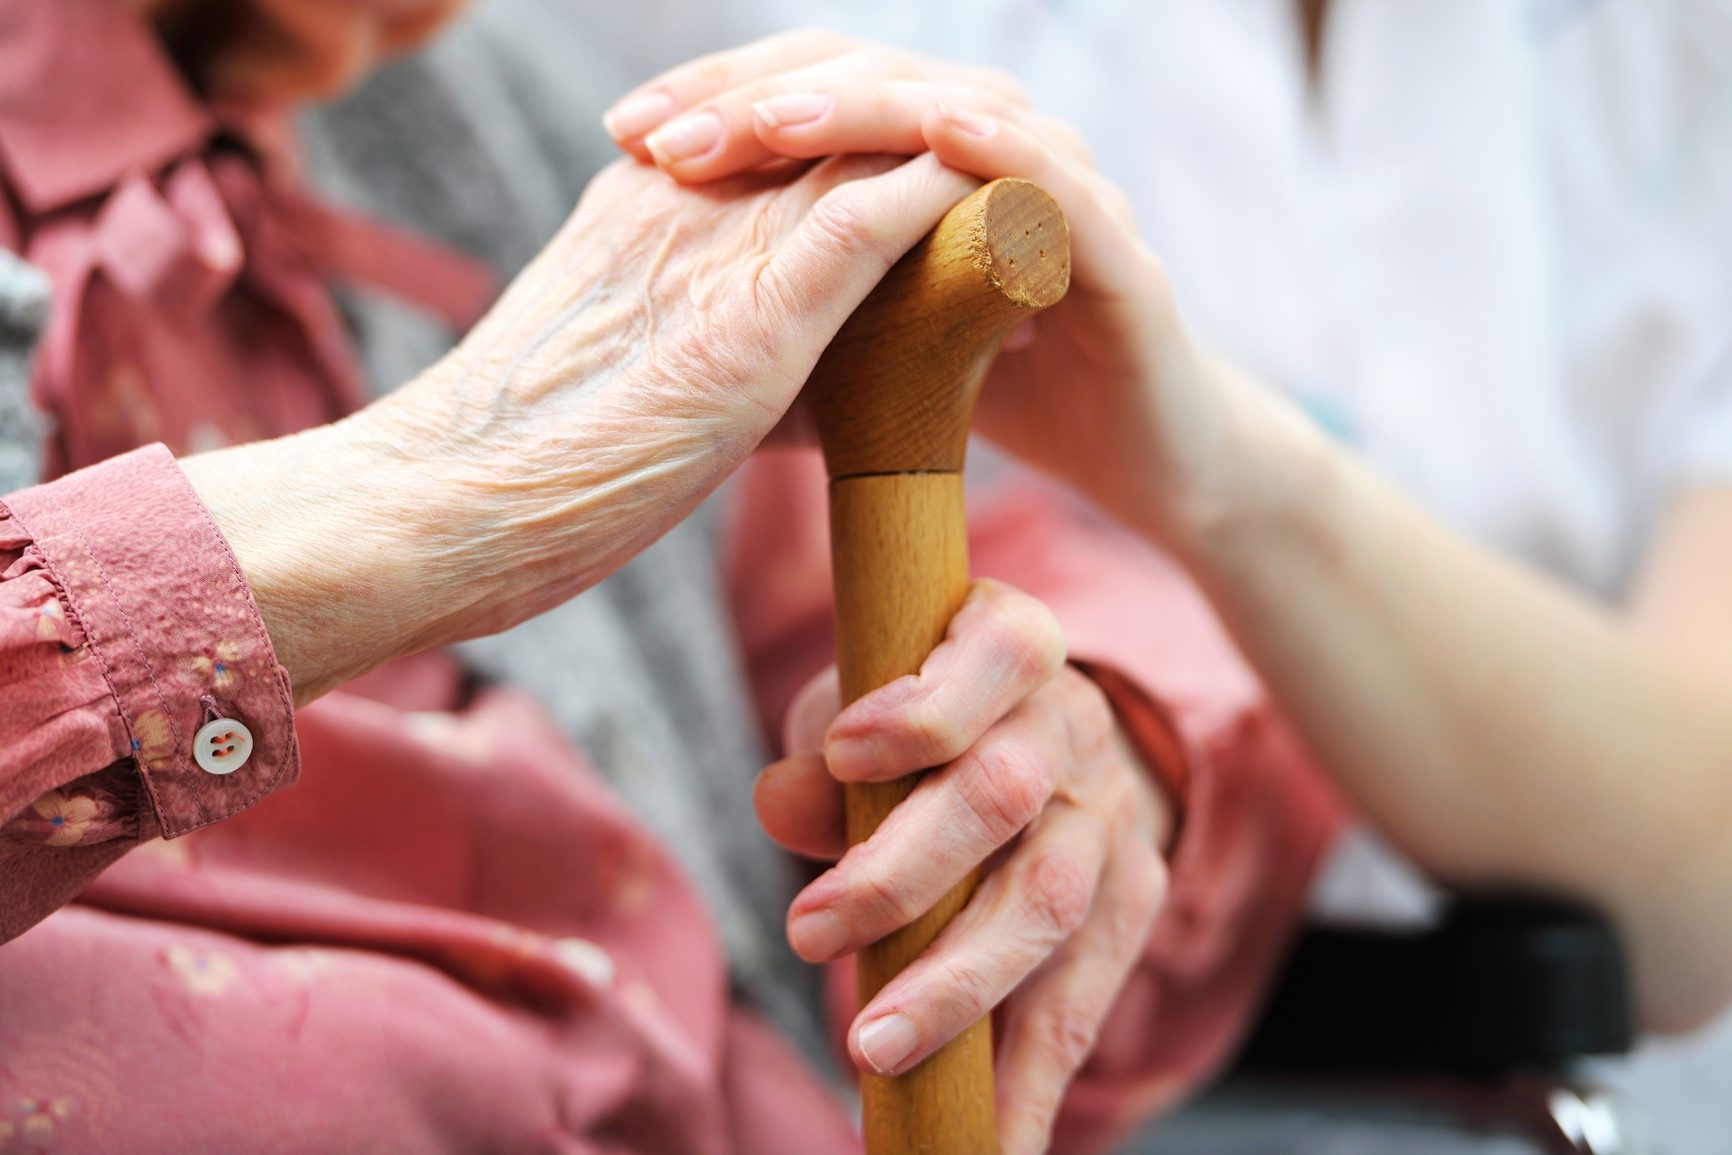 Physicians are being urged to play an expanded role in assessing the health of caregivers.